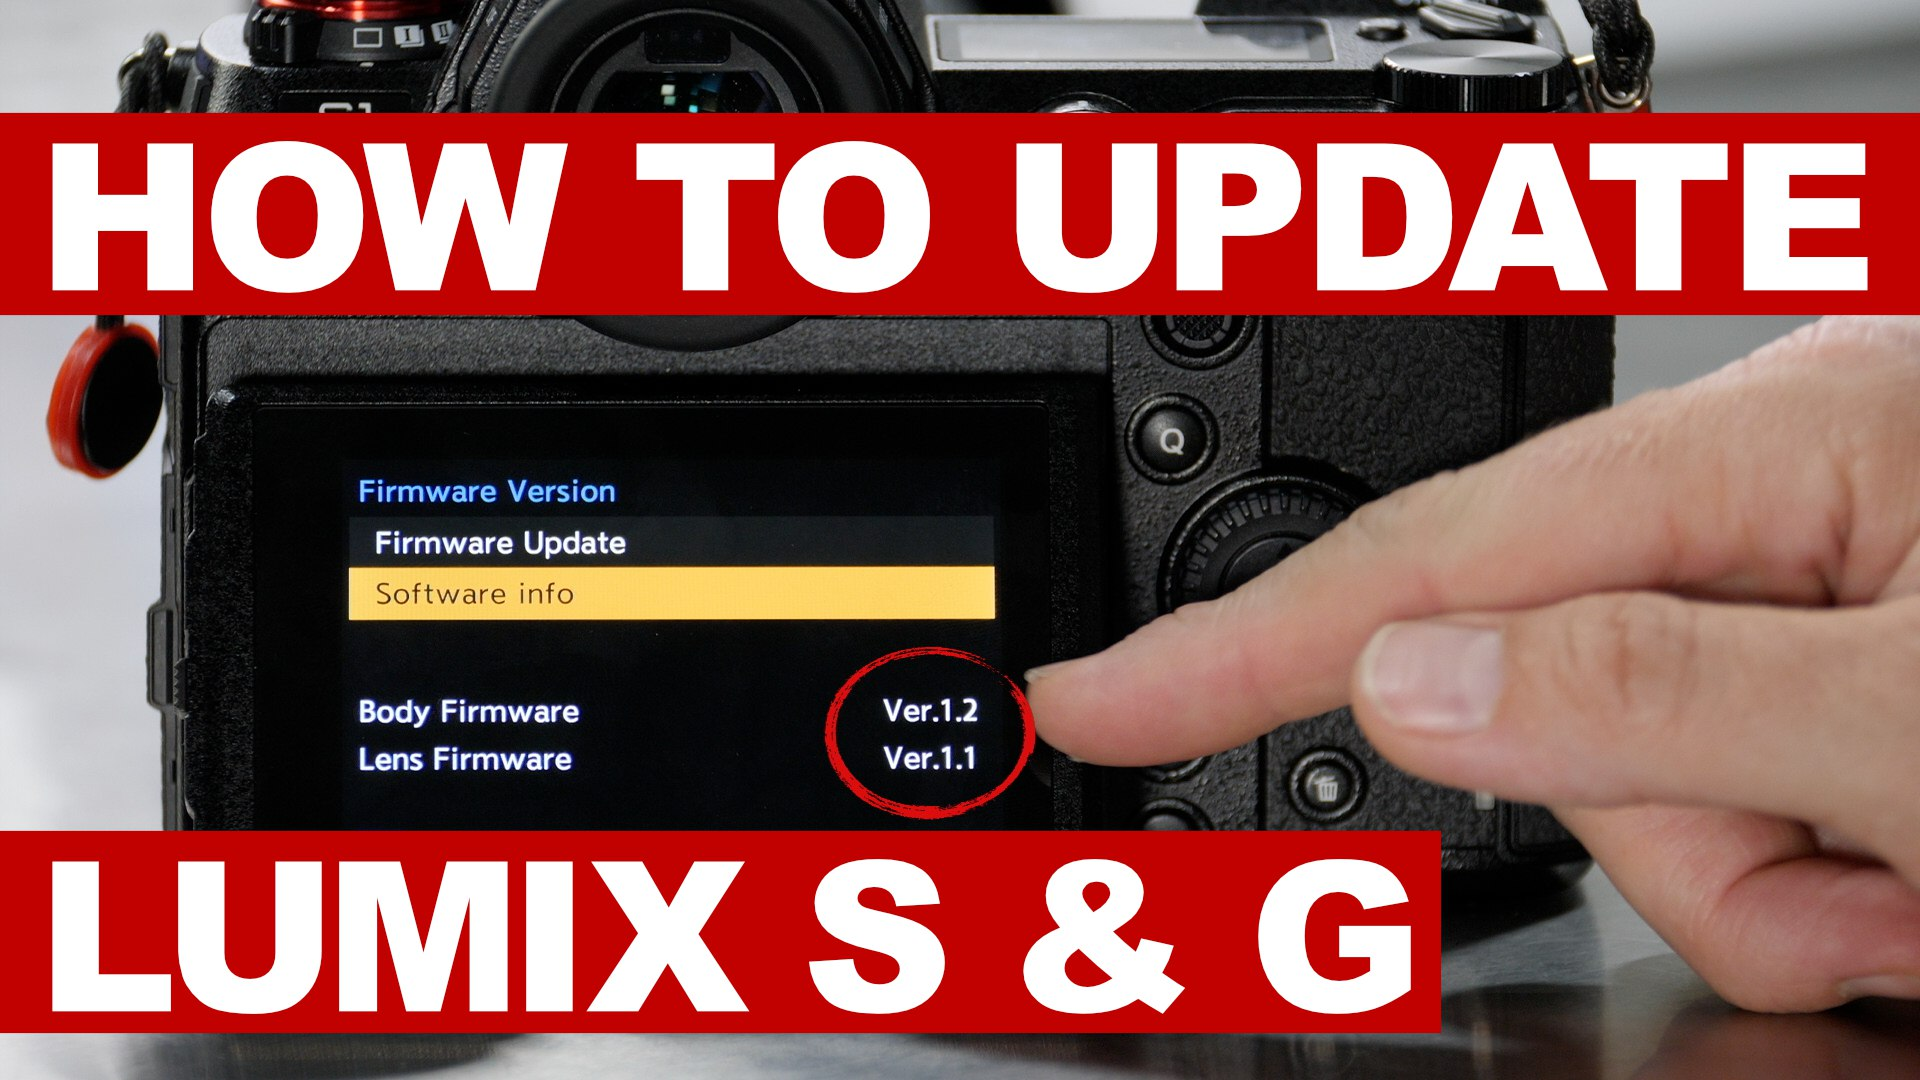 How to Update! July 2019 Firmware Updates LUMIX S & G Series